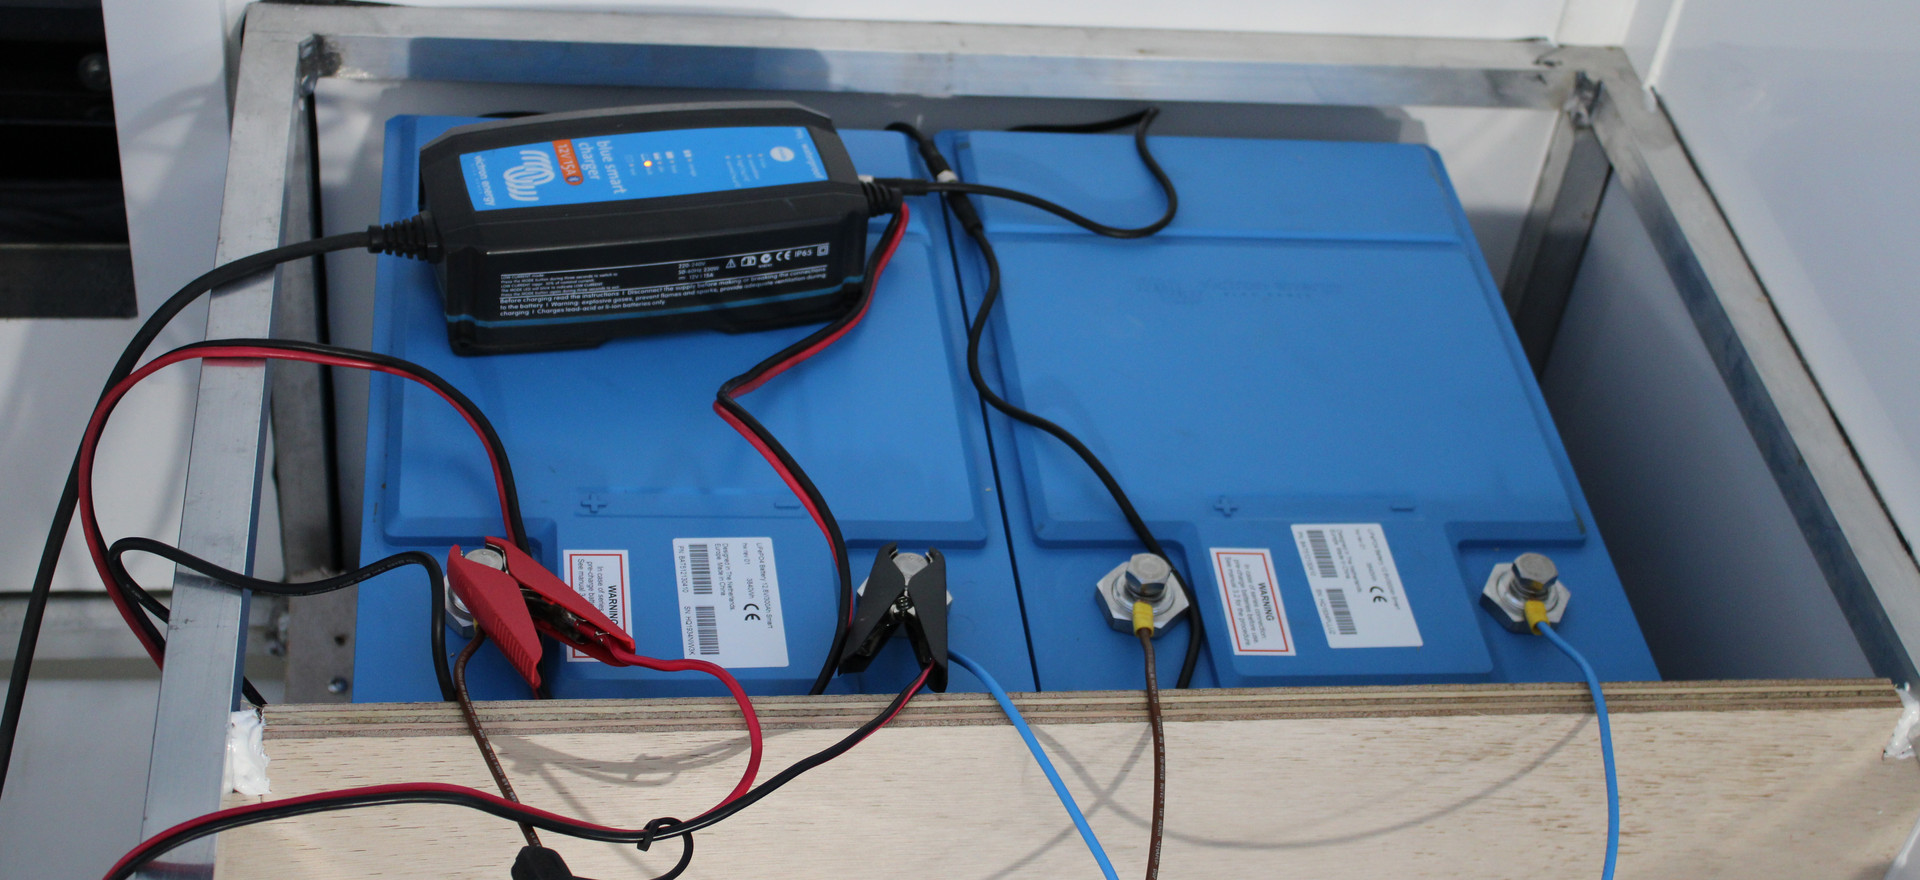 Pre Charge the Lithium Batteries